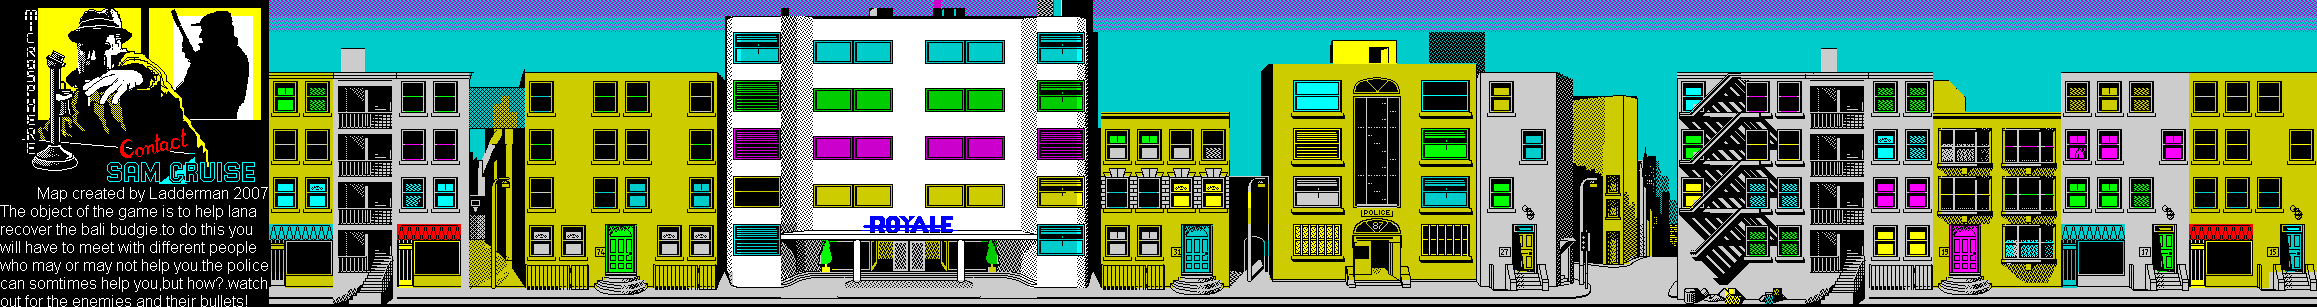 Contact Sam Cruise - The Map